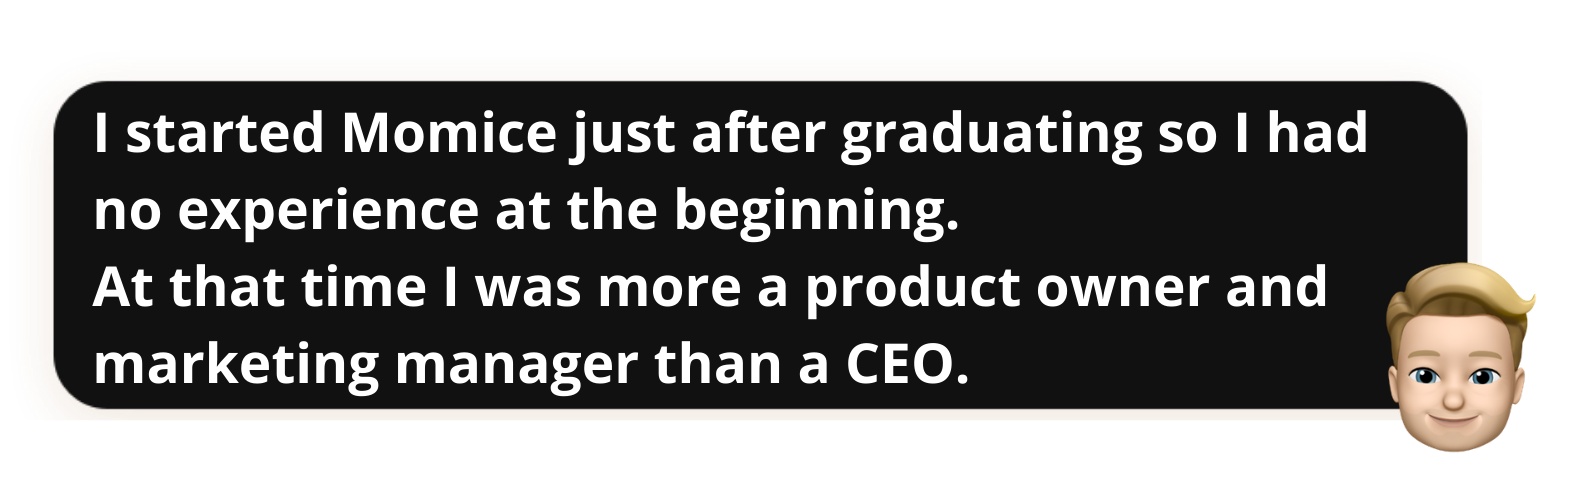 """""""I started Momice just after graduating so I had no experience at the beginning.At that time I was more a product owner and marketing manager than a CEO"""""""